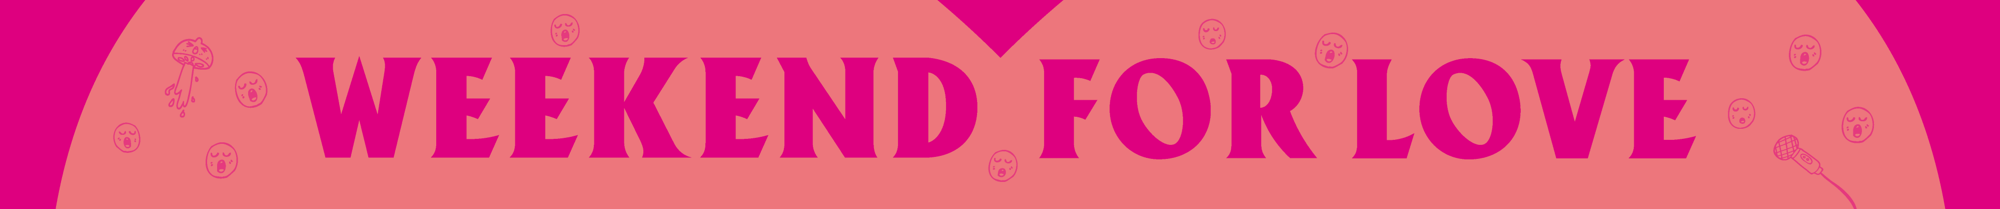 Weekend for love logo